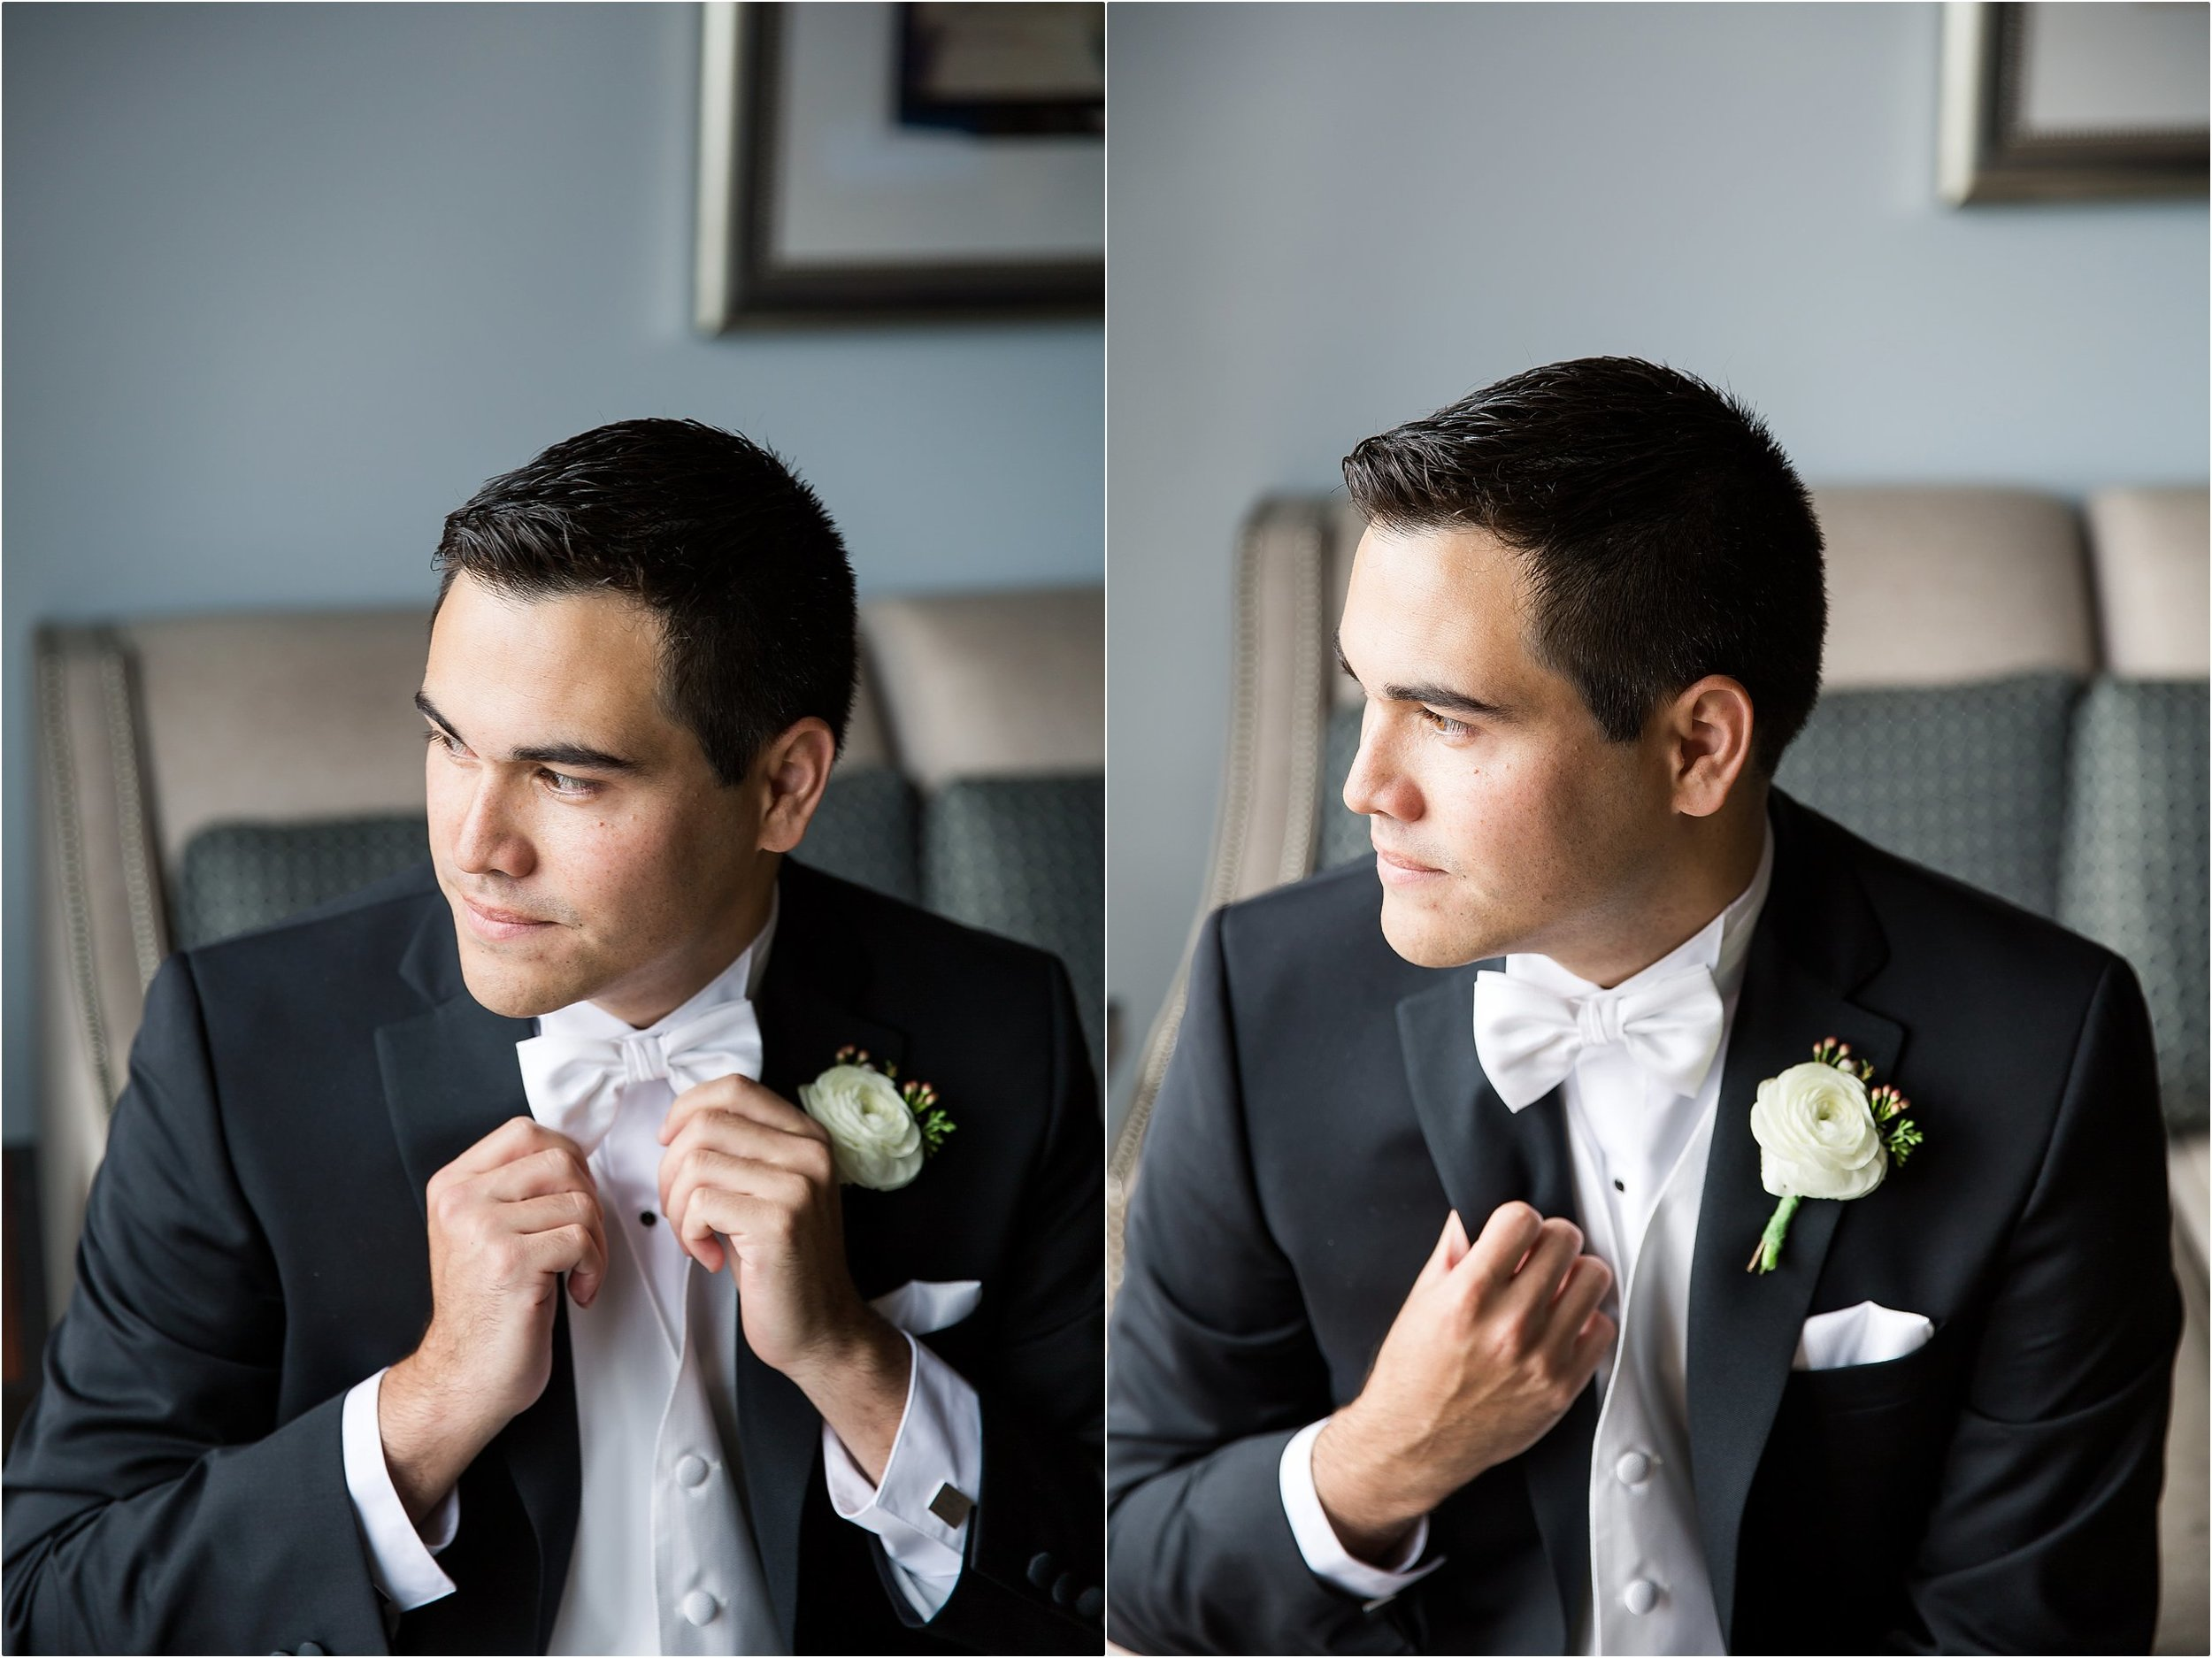 Groom getting ready portraits with ranunculus boutonniere